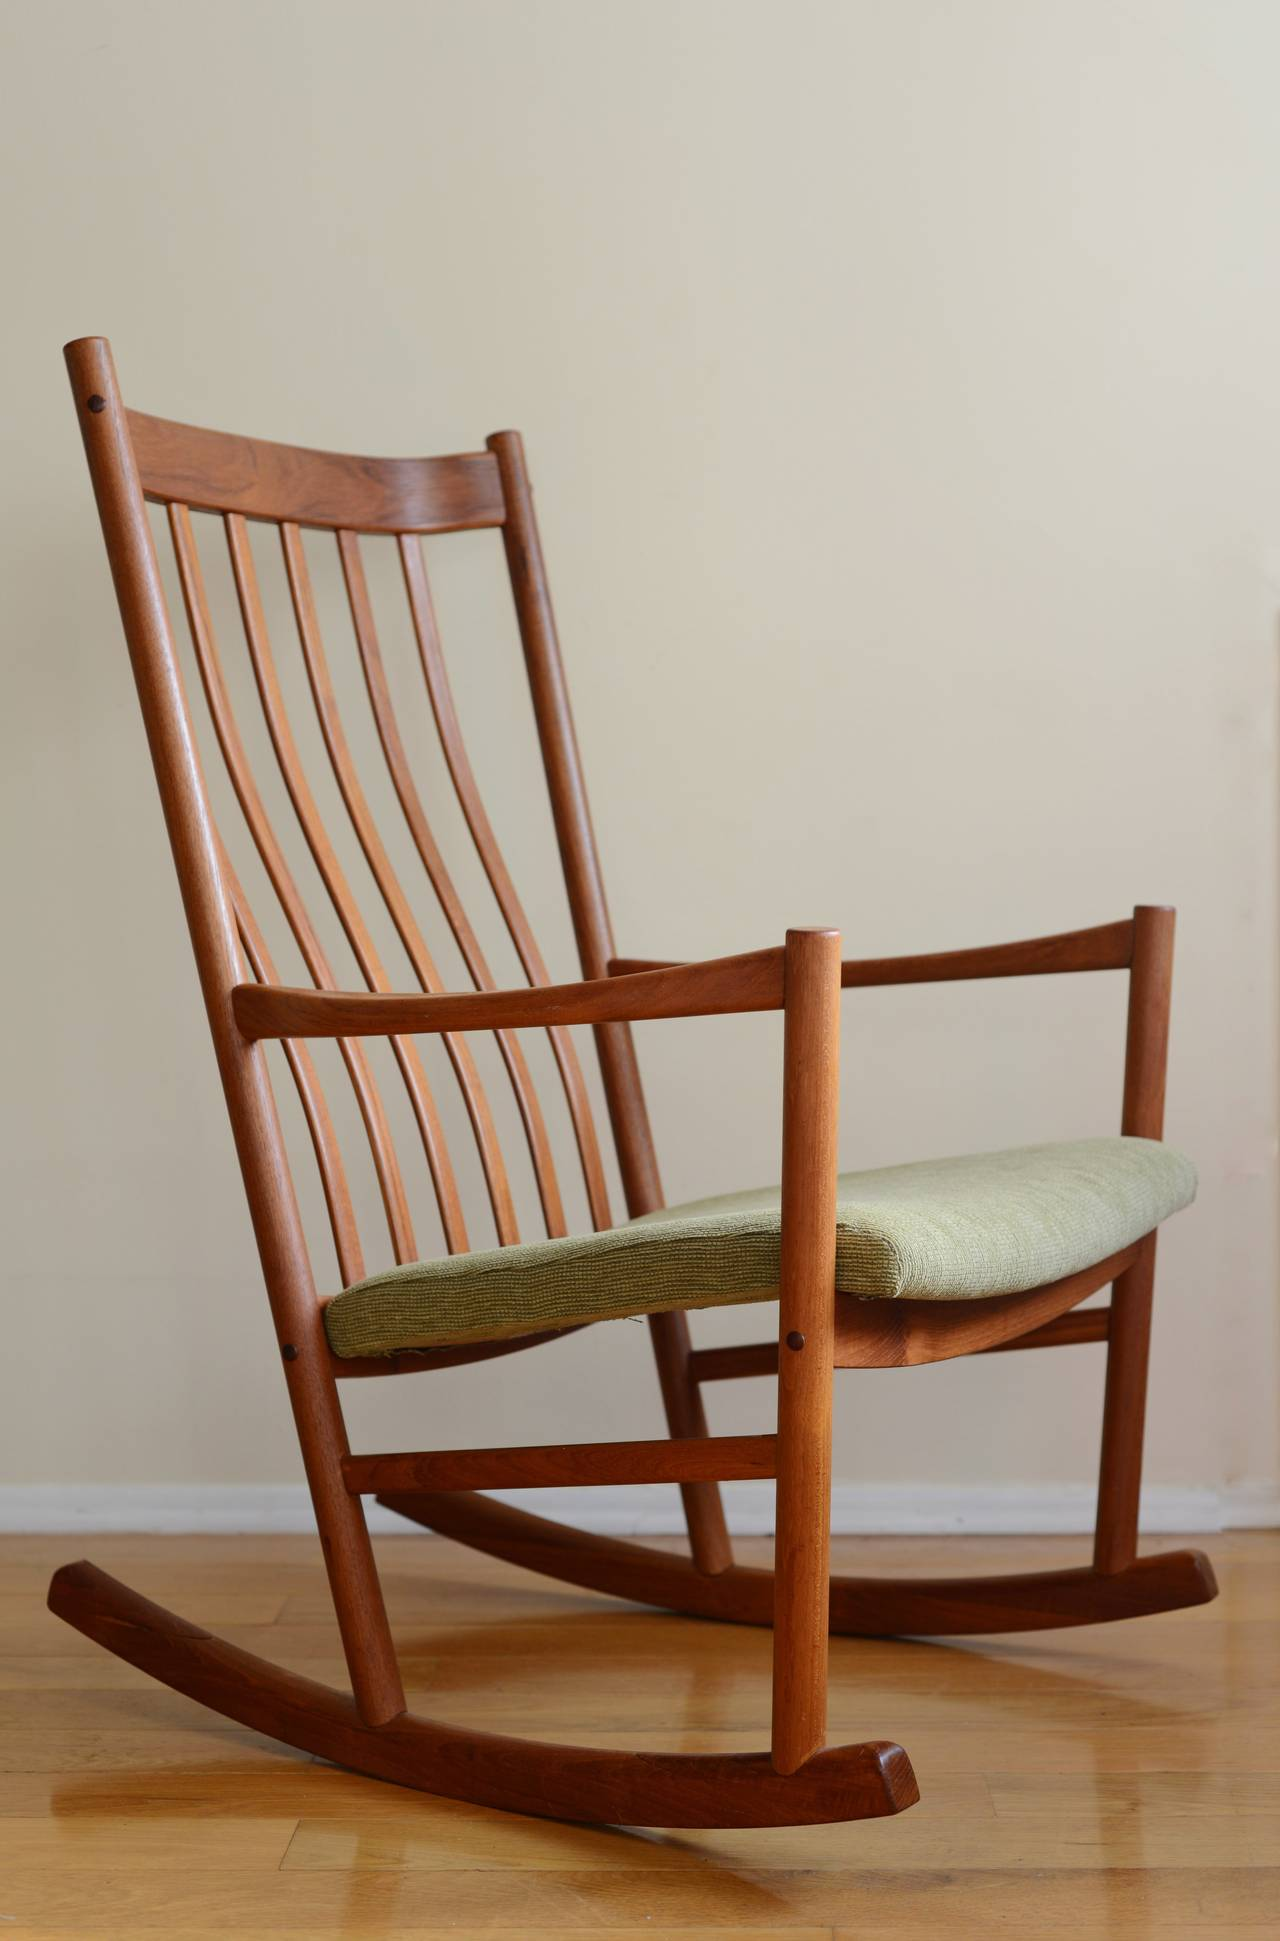 Hans Wegner Teak Rocking Chair at 1stdibs